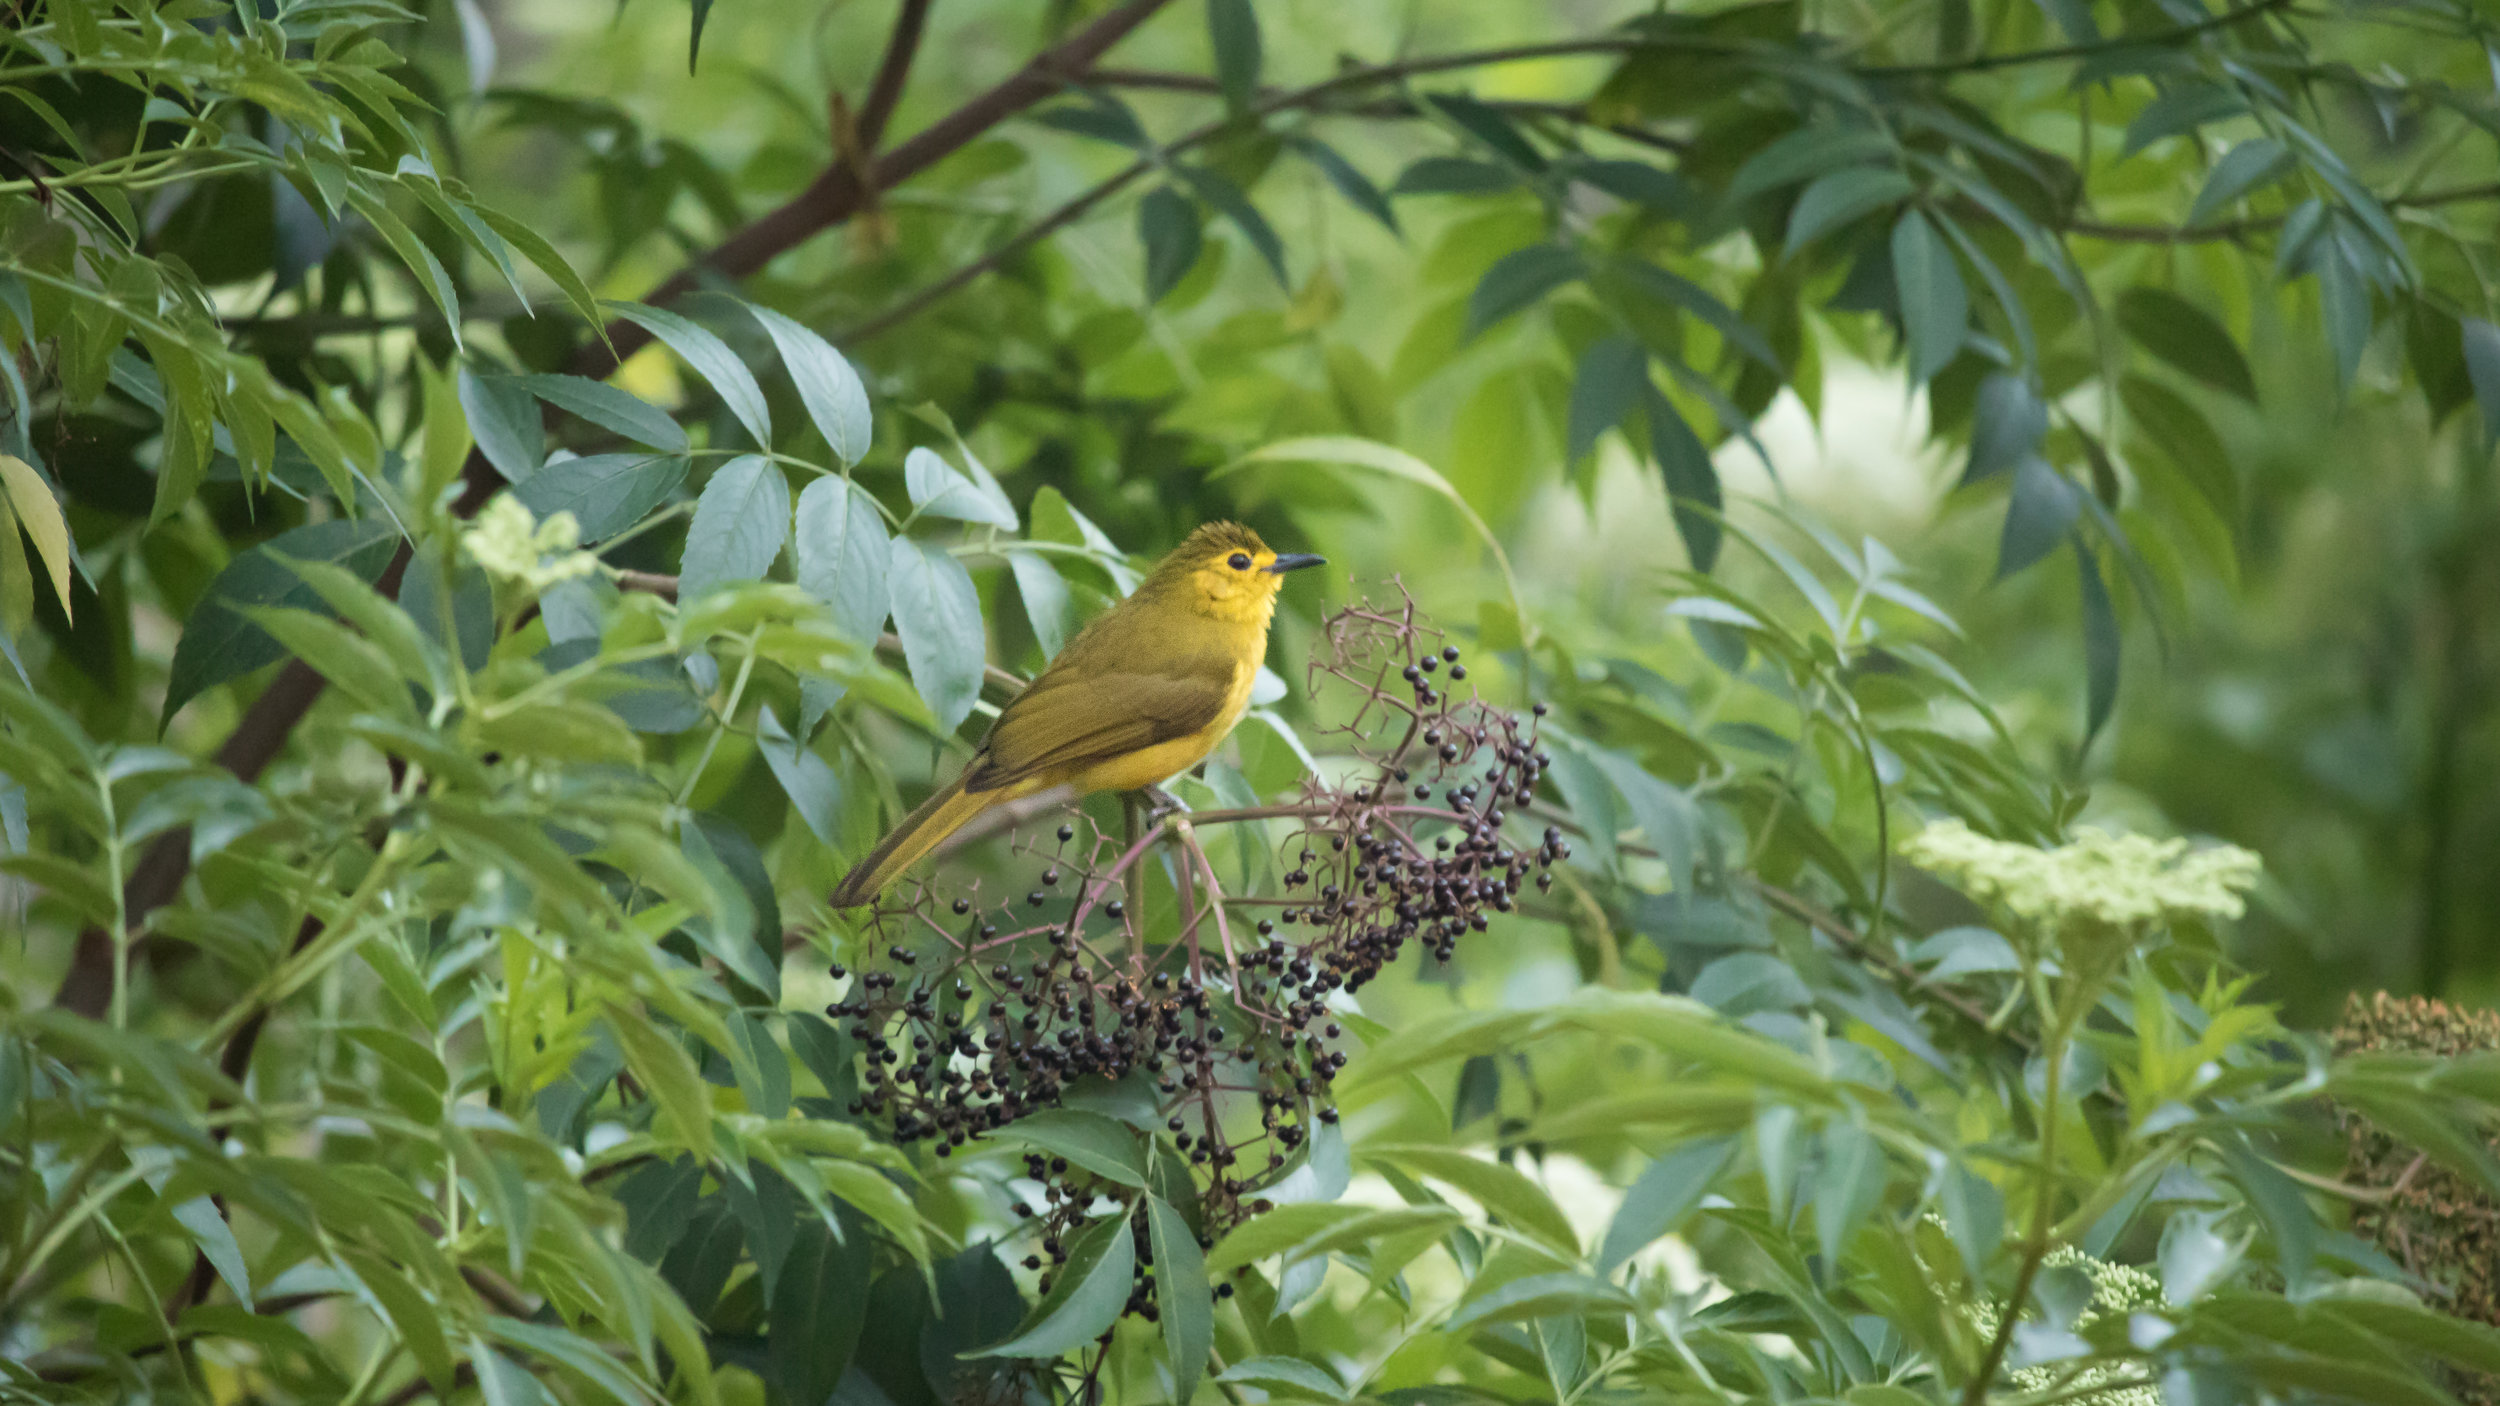 Yellow-browed Bulbul (Acritillas indica) in Munnar region, Kerala, India. February 2015. Not baited. Not called in.